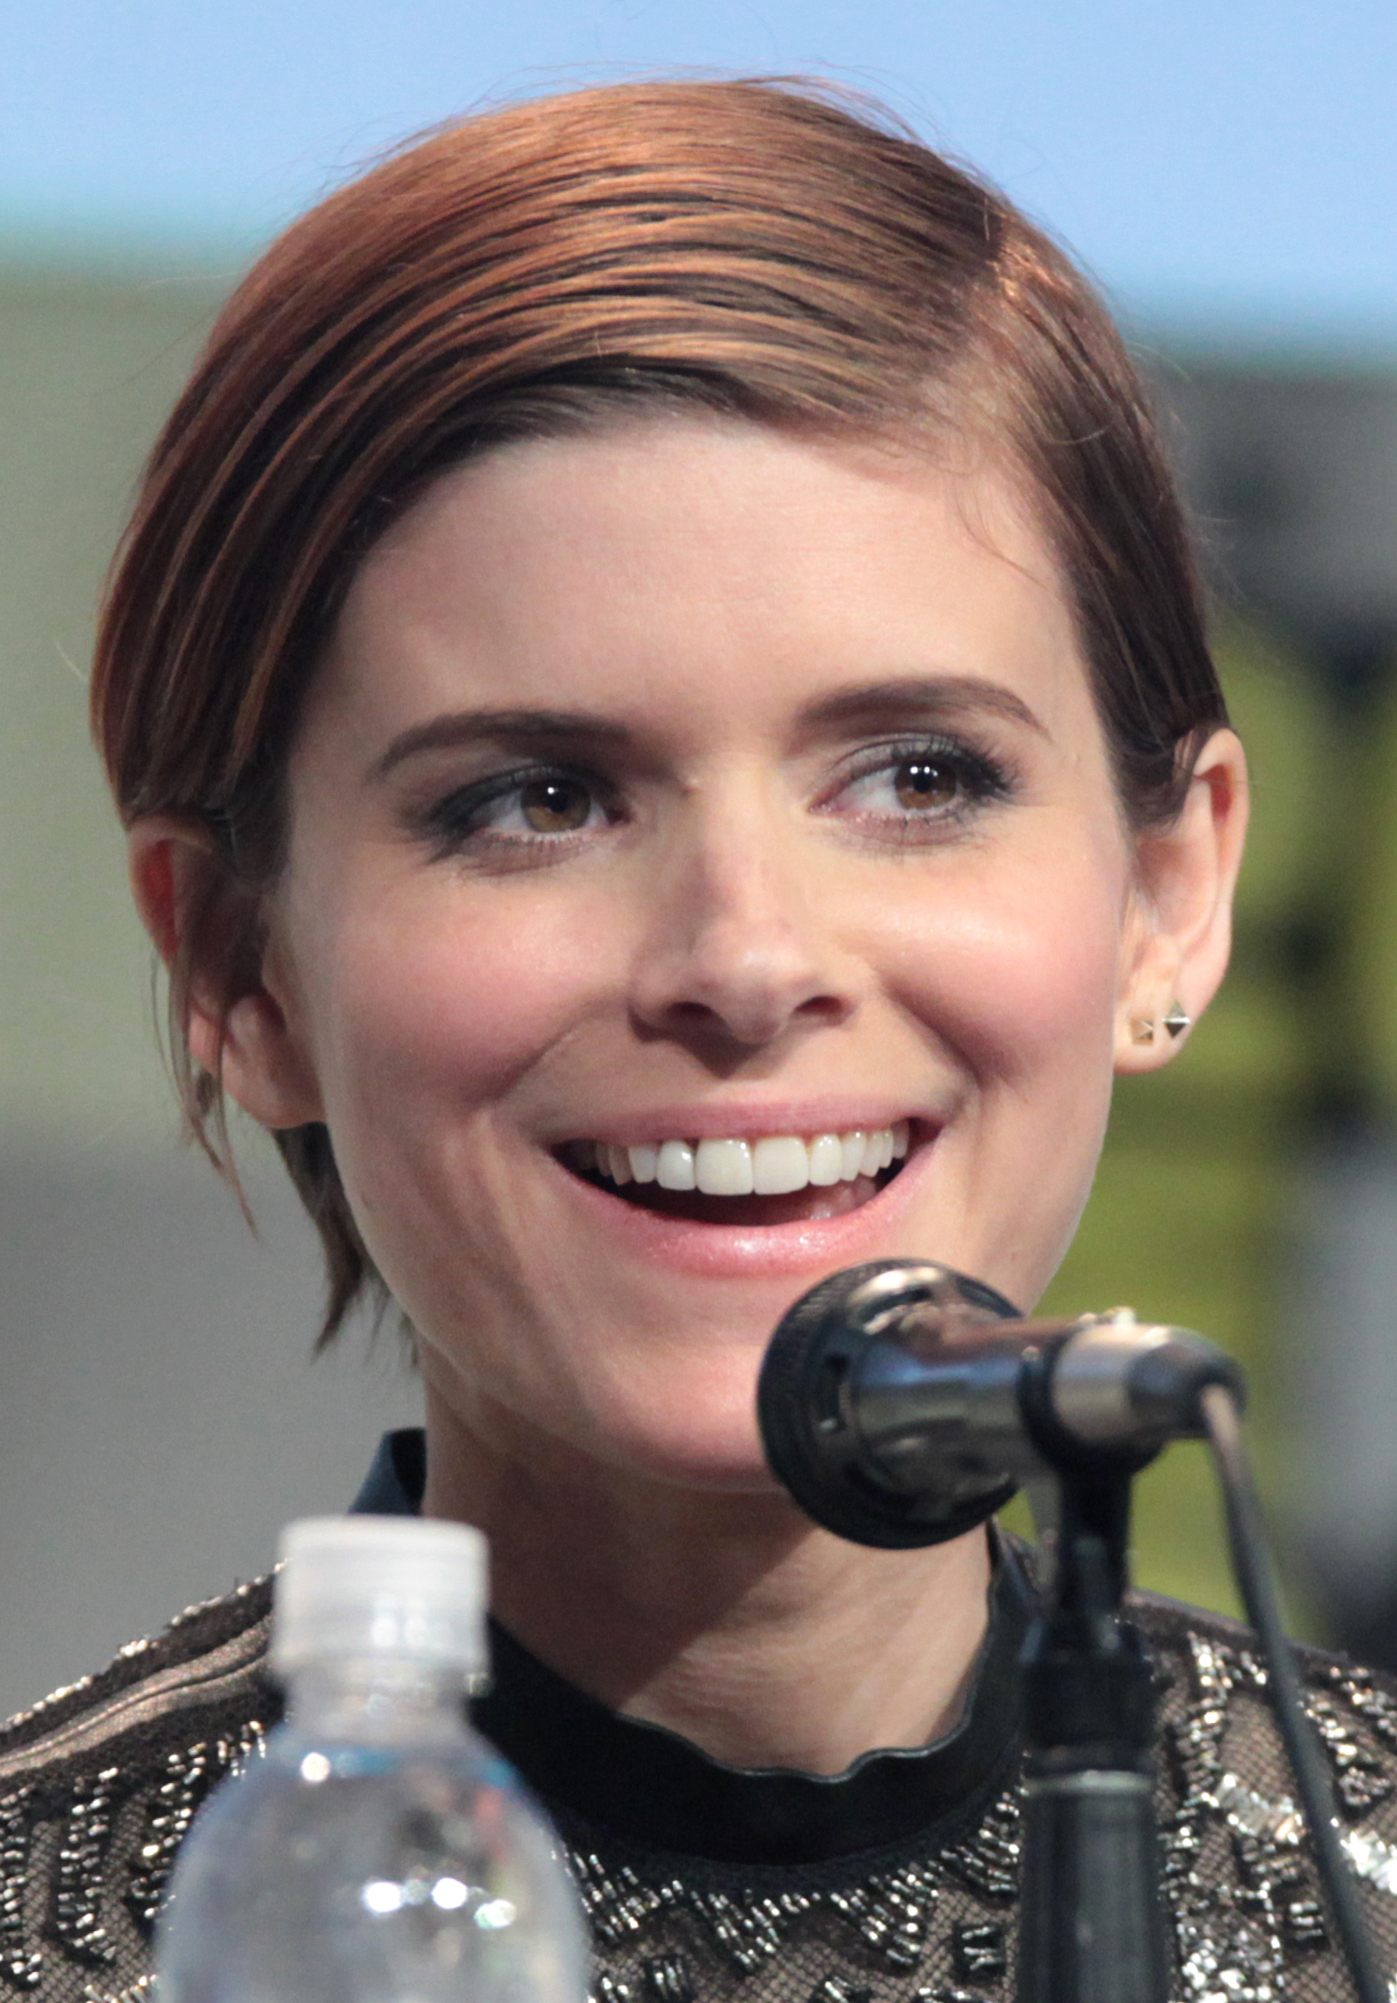 Mara at the 2015 [[San Diego Comic-Con]] promoting ''[[Fantastic Four (2015 film)|Fantastic Four]]''